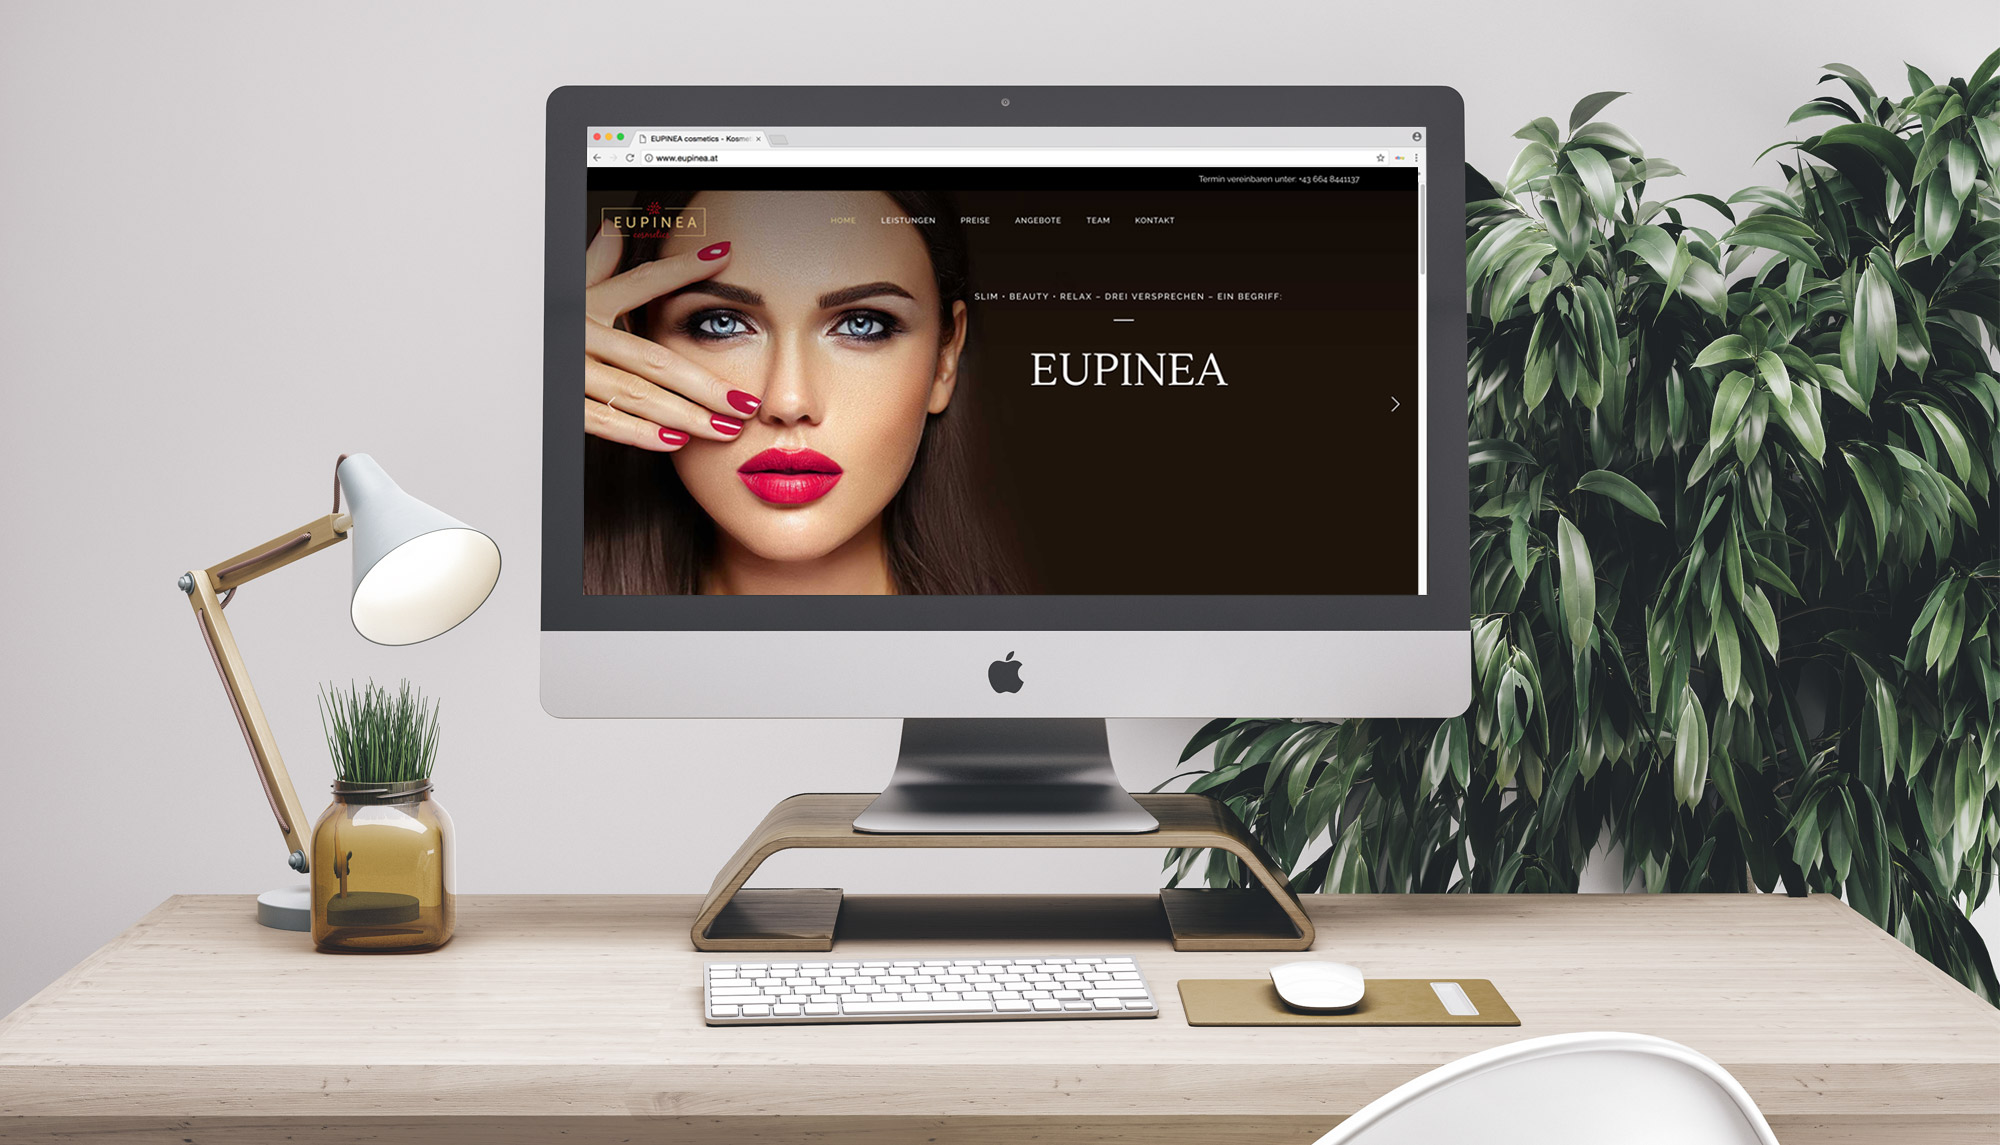 Eupinea Website Design